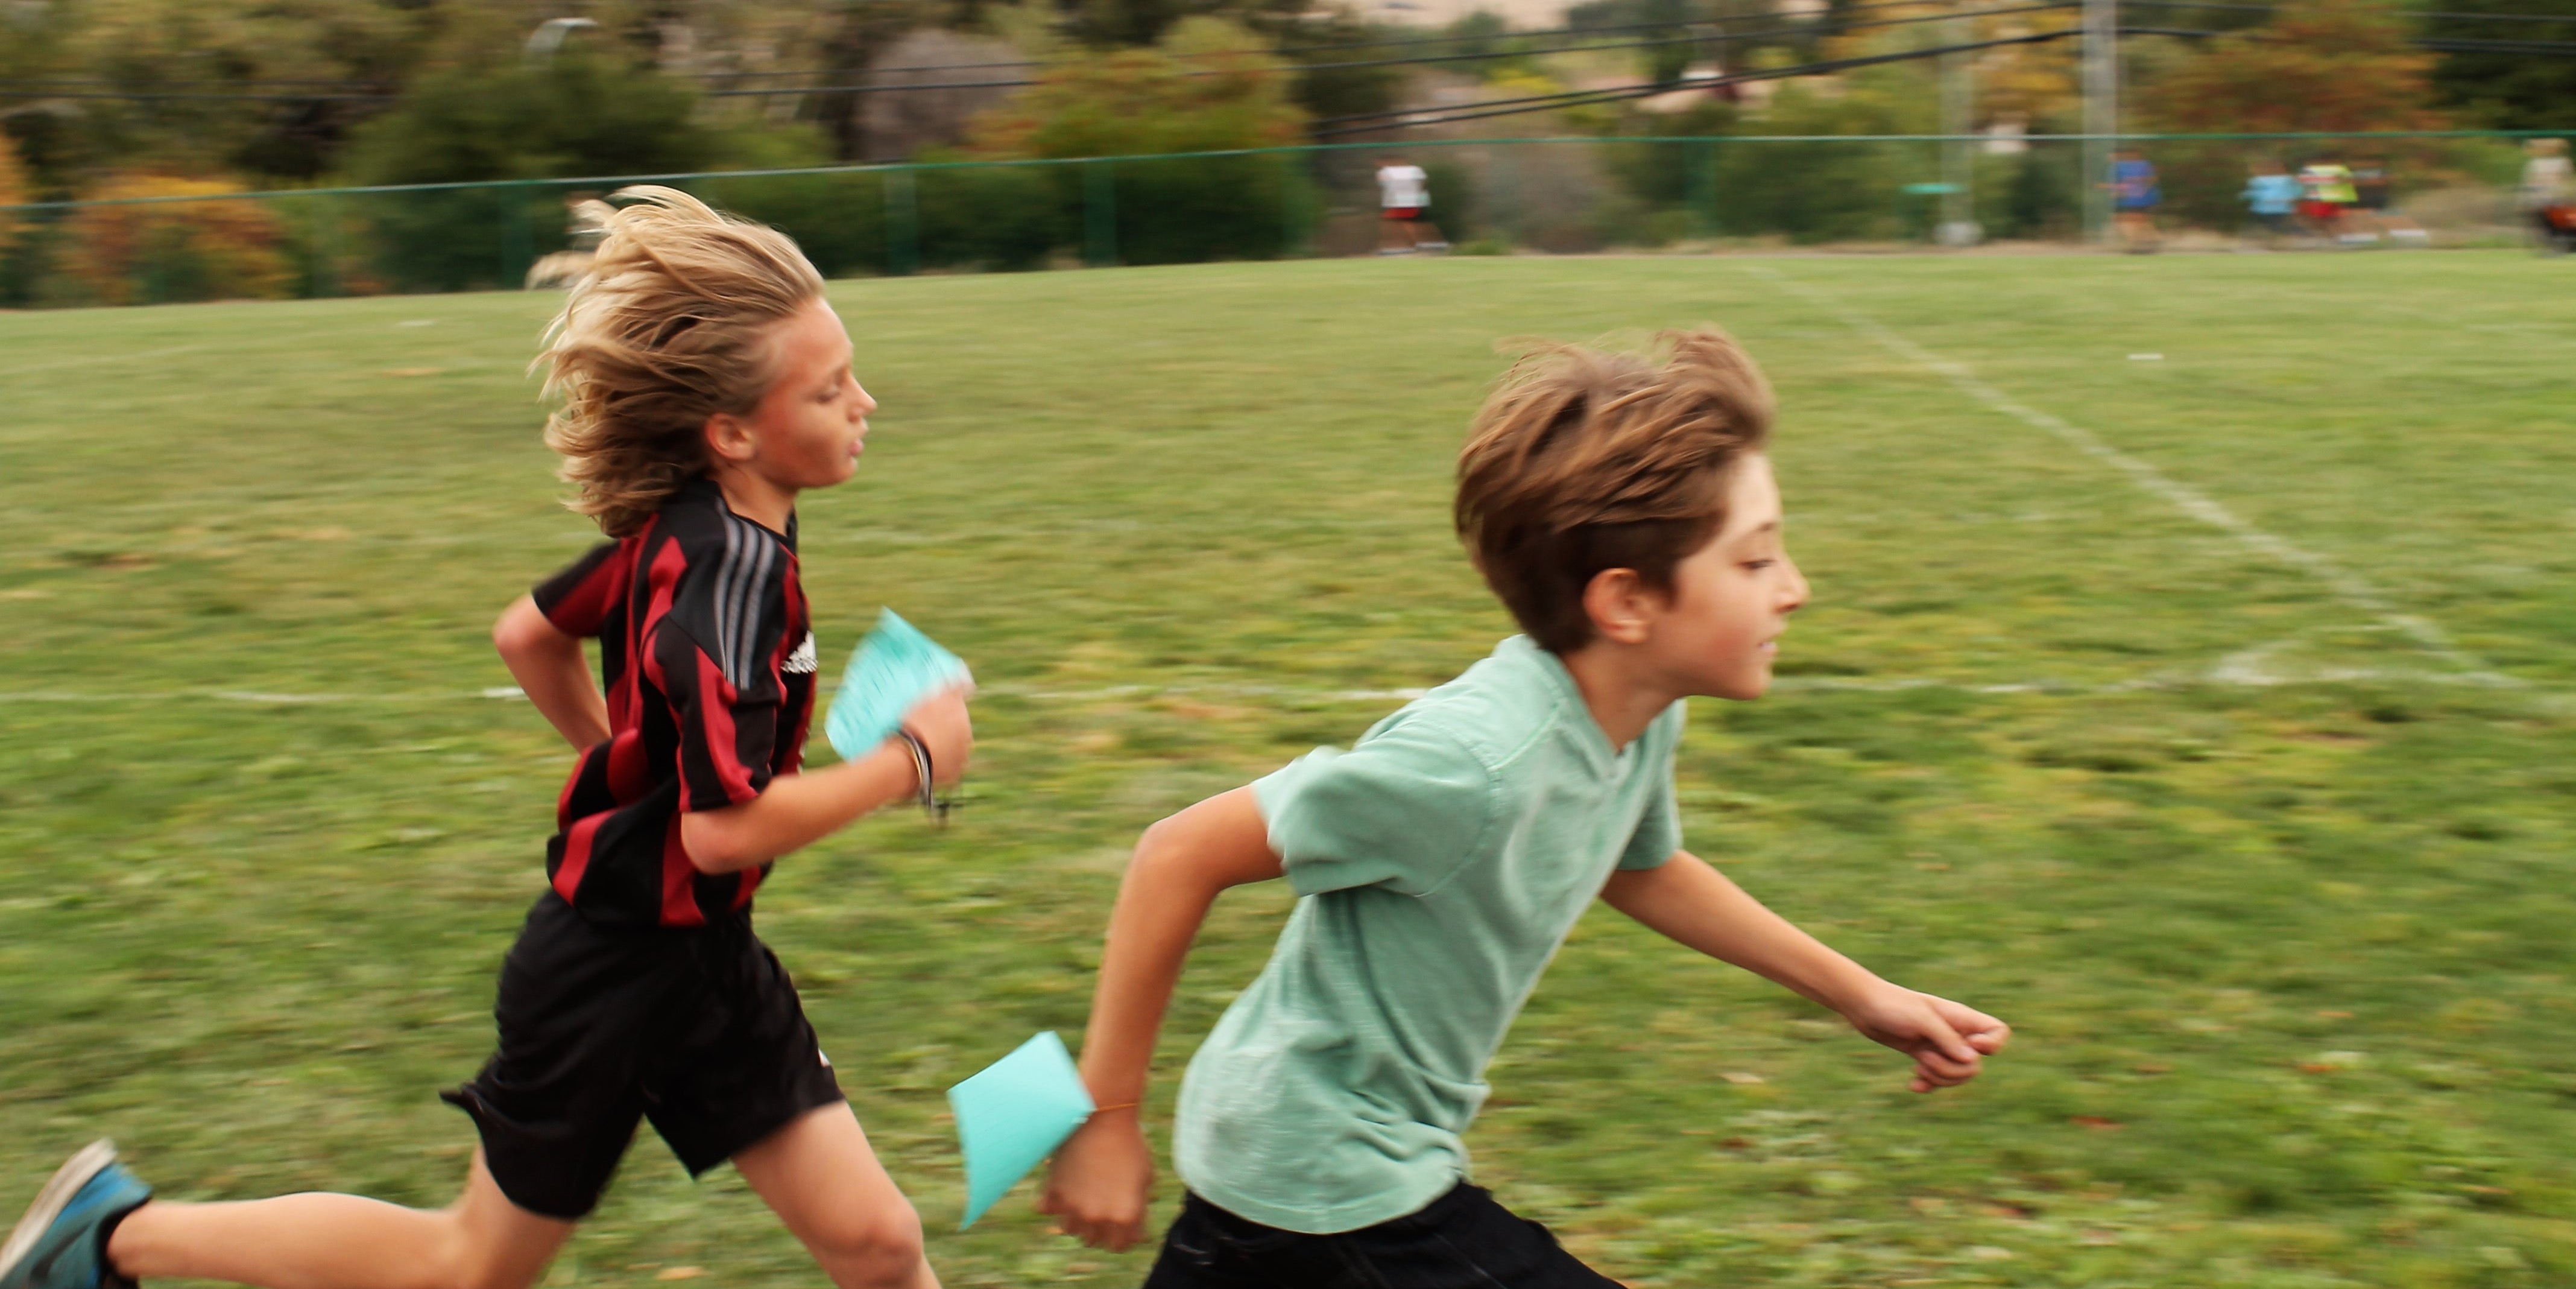 Olympic Games & Activities For Kids